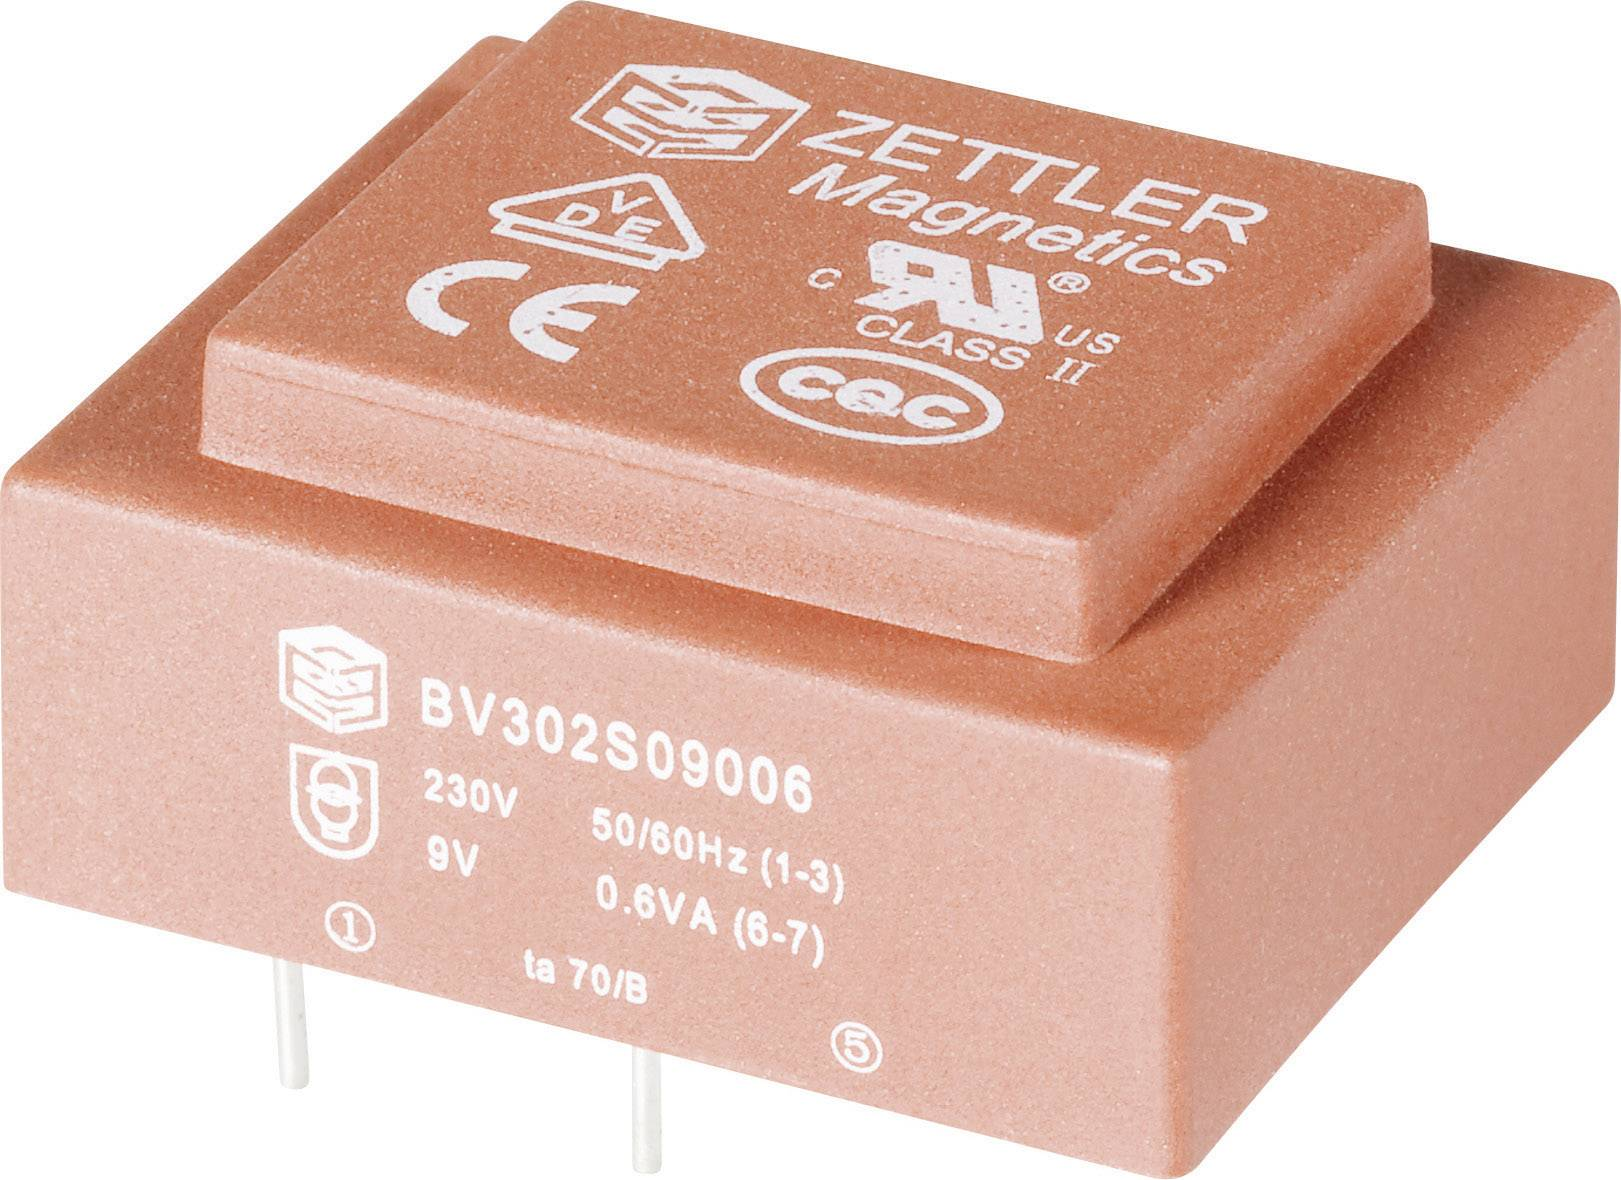 Transformátor do DPS Zettler Magnetics El30, 230 V/18 V, 33 mA, 2 VA